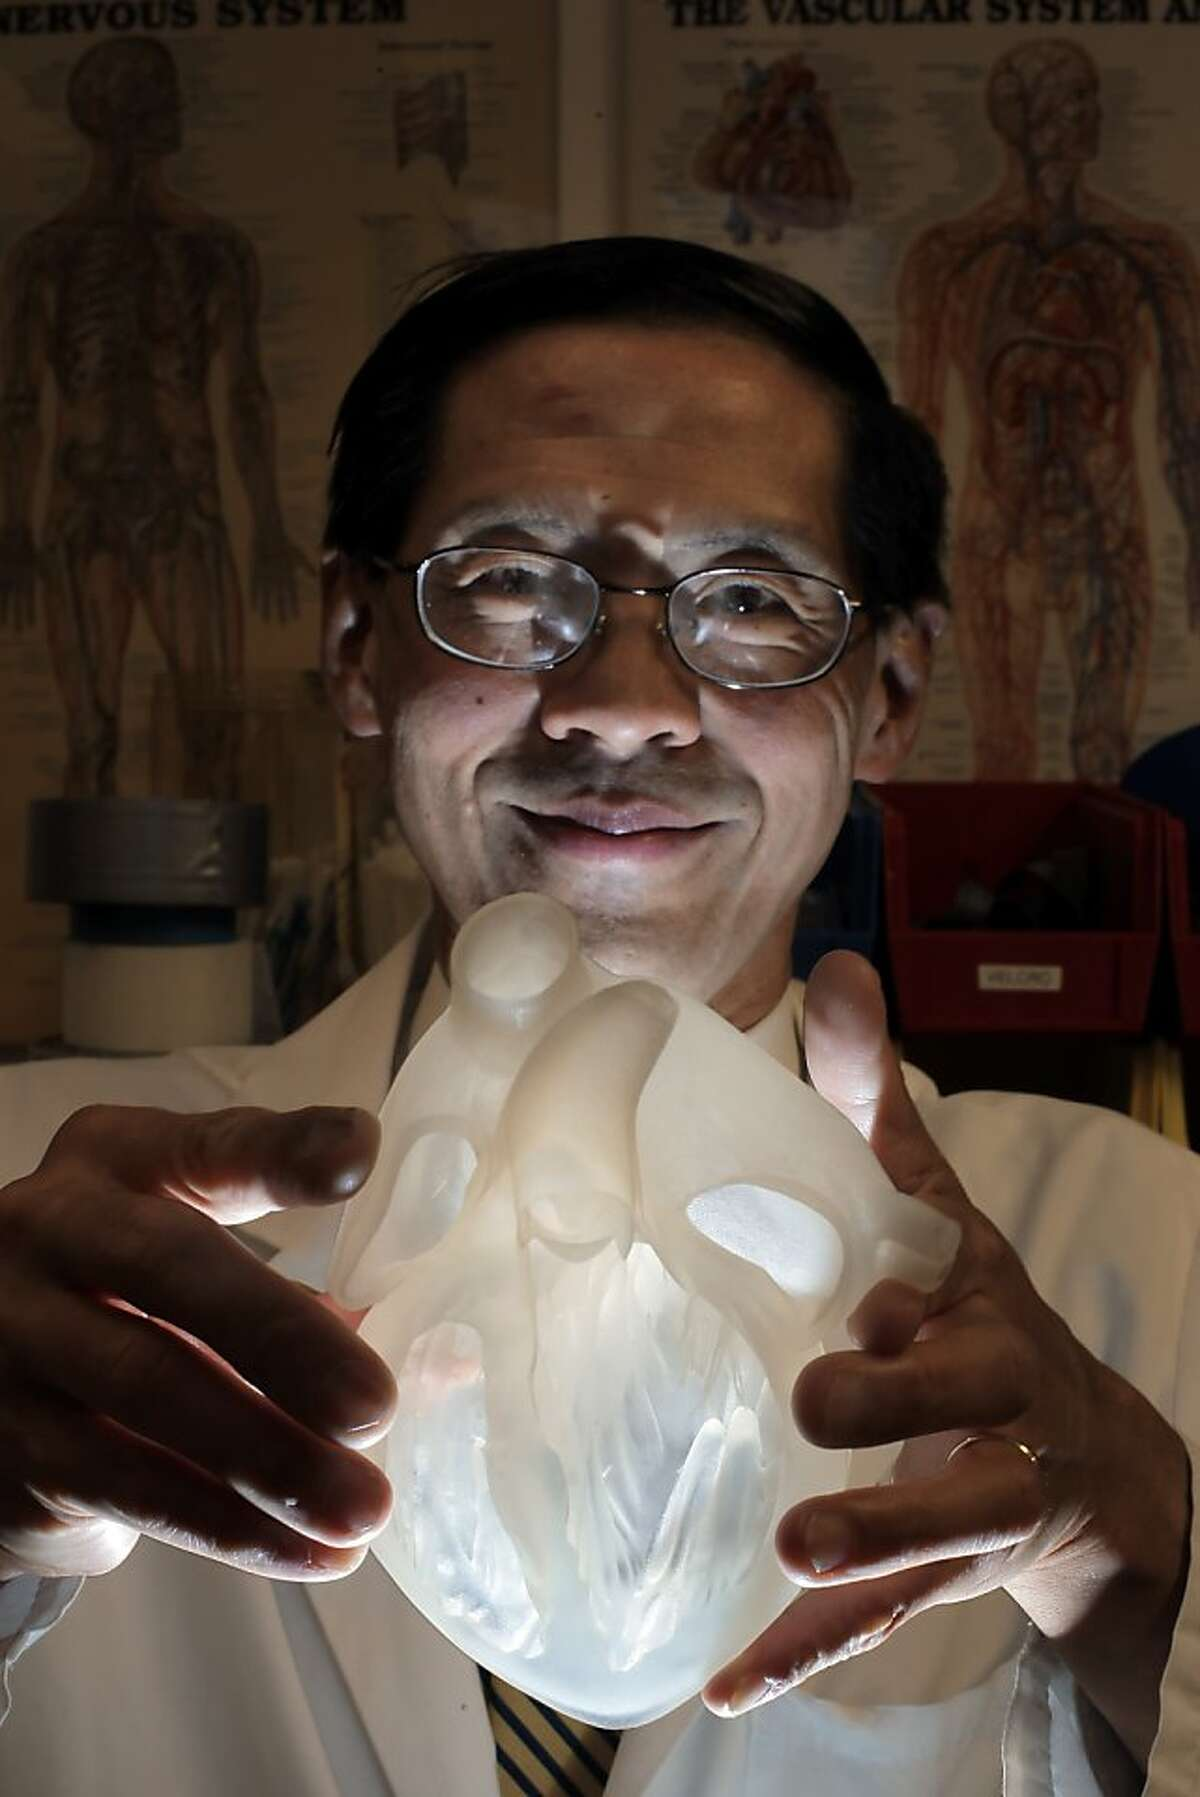 Dr. Paul Wang is creating 3D models of the human heart at Stanford University using 3D printers to assist in the fabrication of instruments for cardiac patients. He is seen here on Thursday, September 12, 2013, in the Collab at the Clark Center where the items are printed.